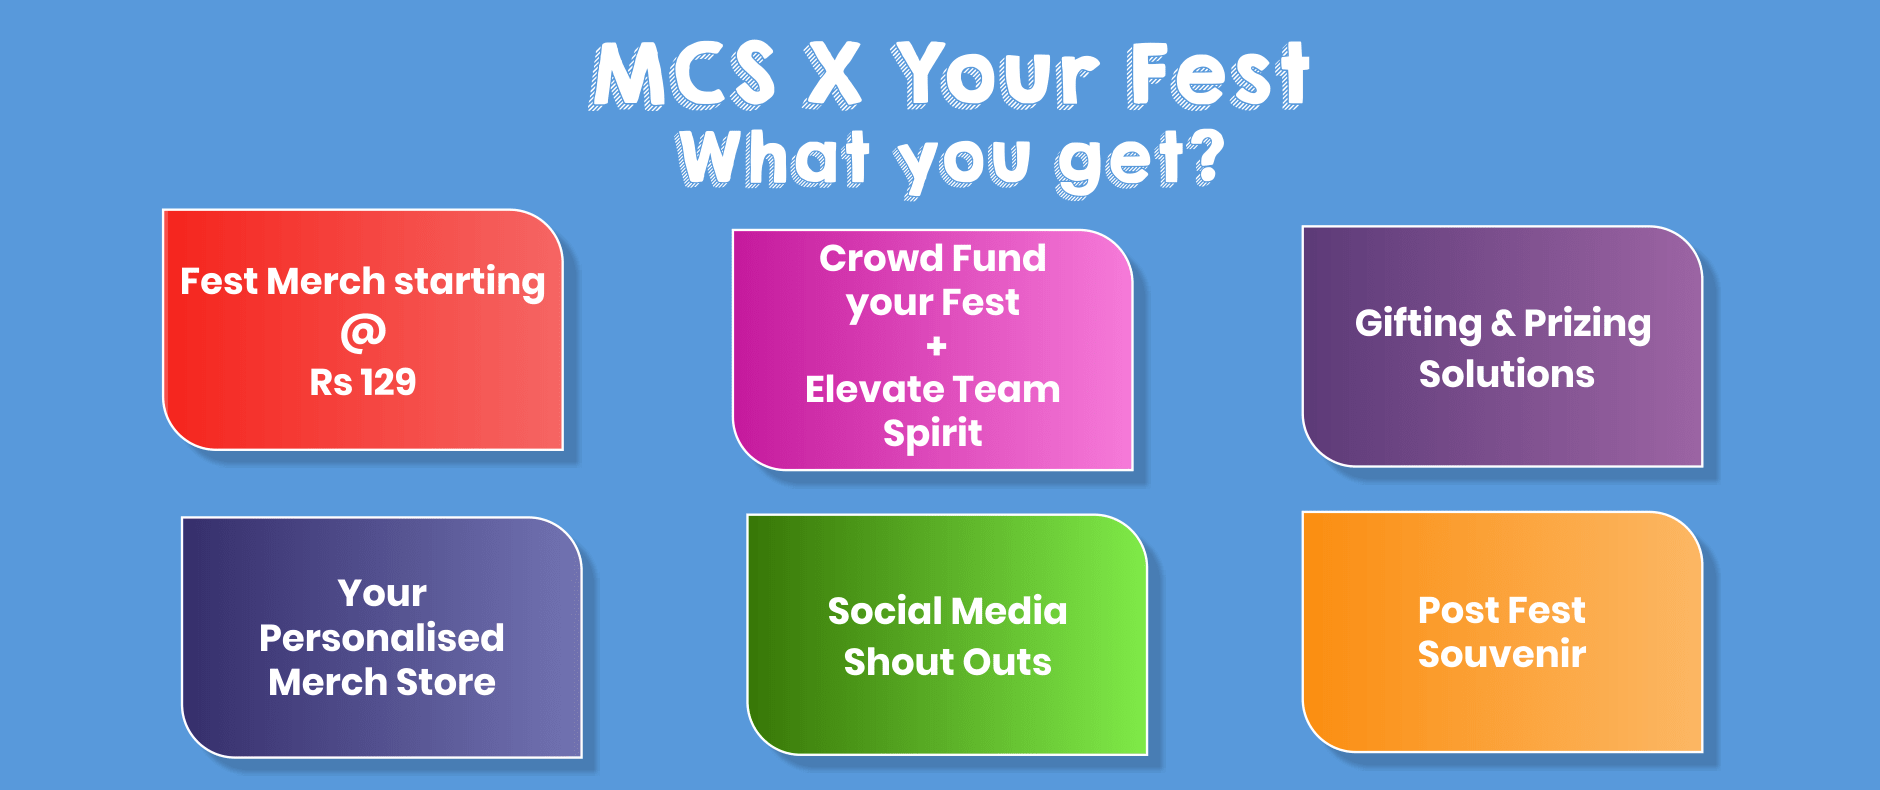 MCS X Your Fest - What you get?